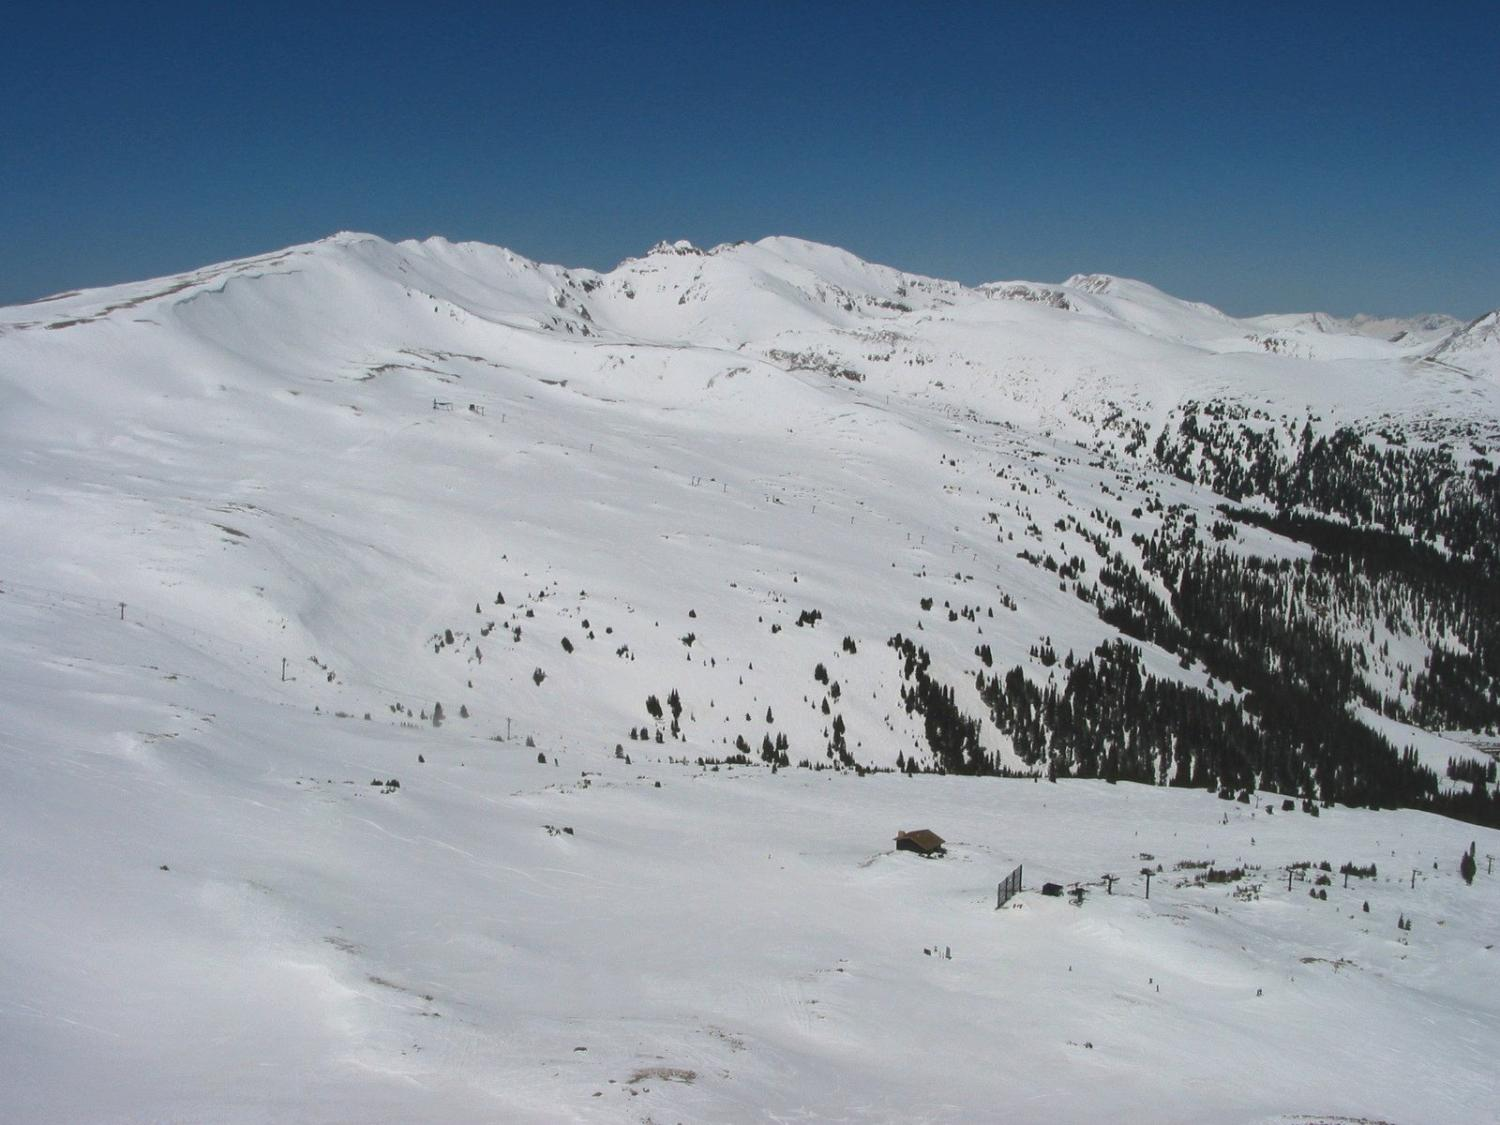 Chairlift 9 and 4 viewed from Wild Child